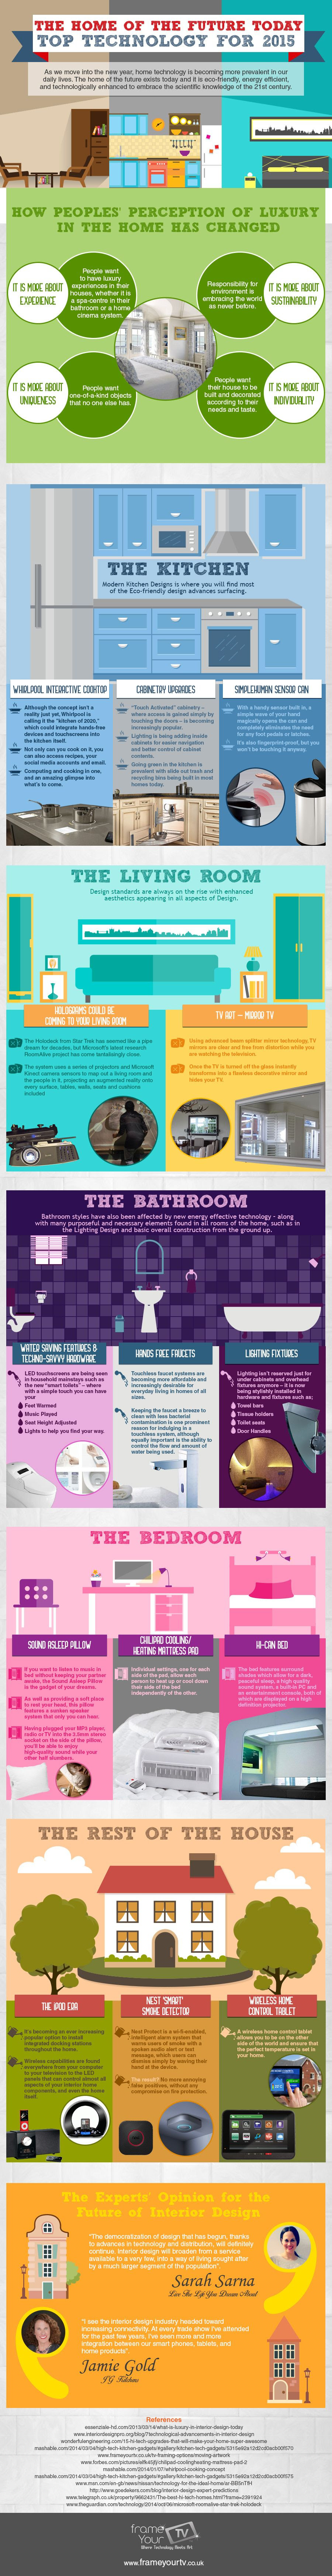 The Home of the Future Top Technology for 2015